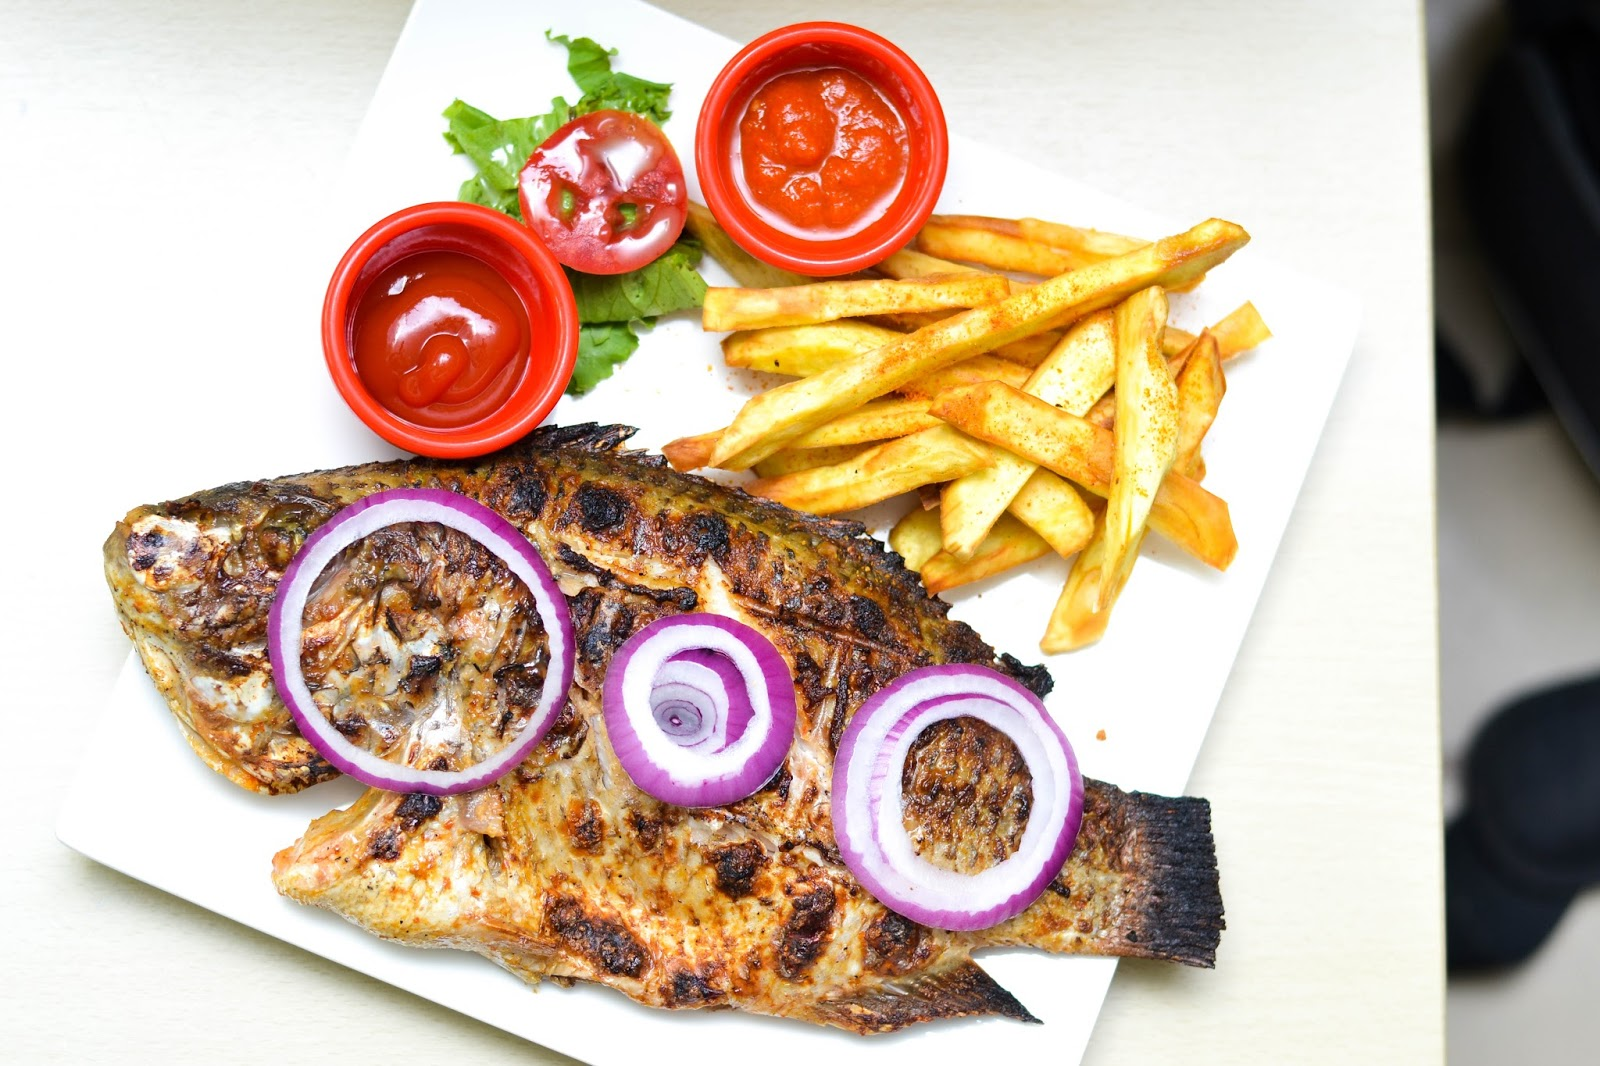 Sweet Potato Fries, Red Onions and Grilled Fish